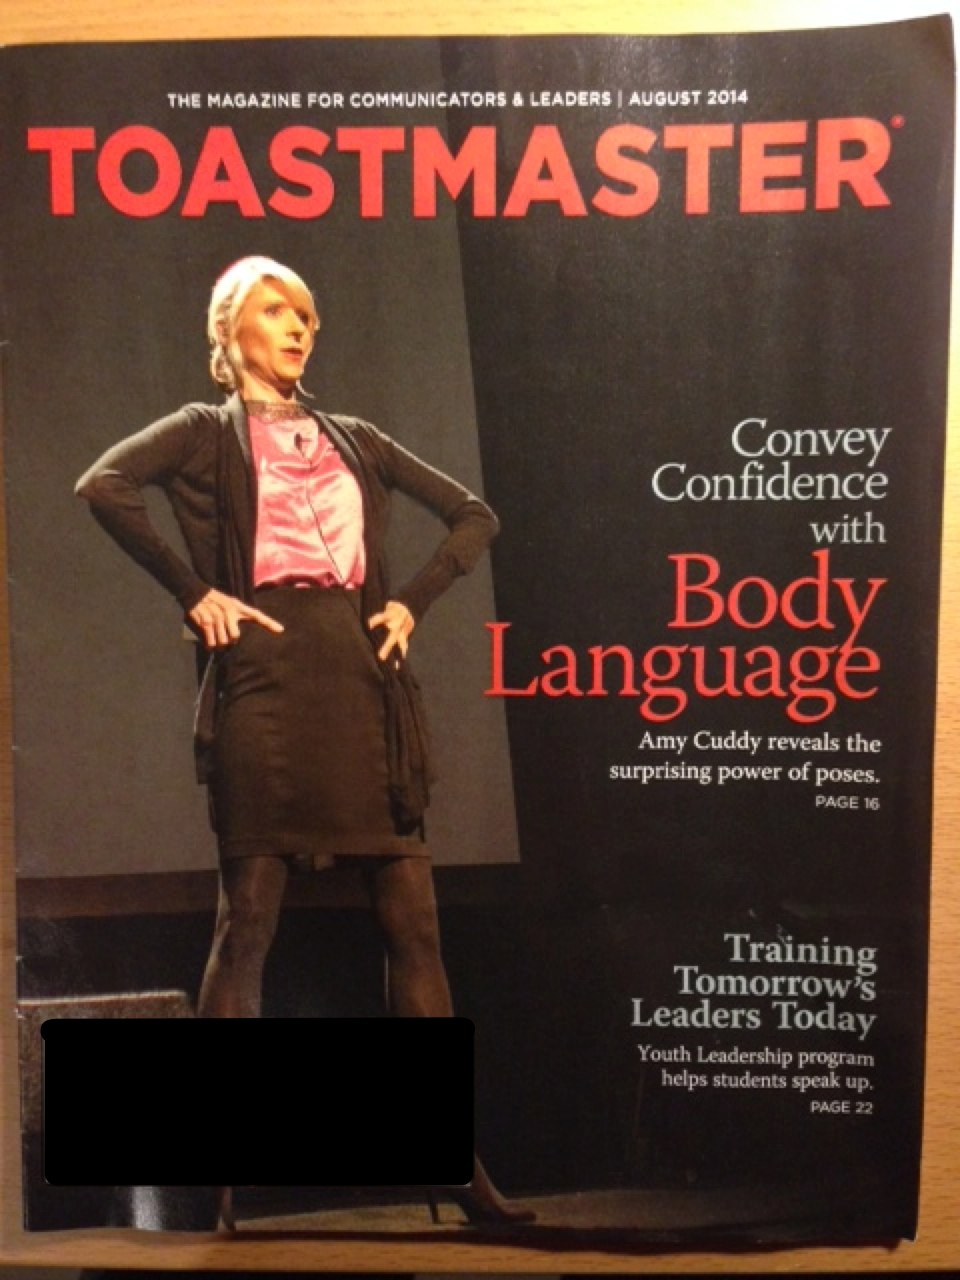 Amy Cuddy on the cover of Toastmaster Magazine